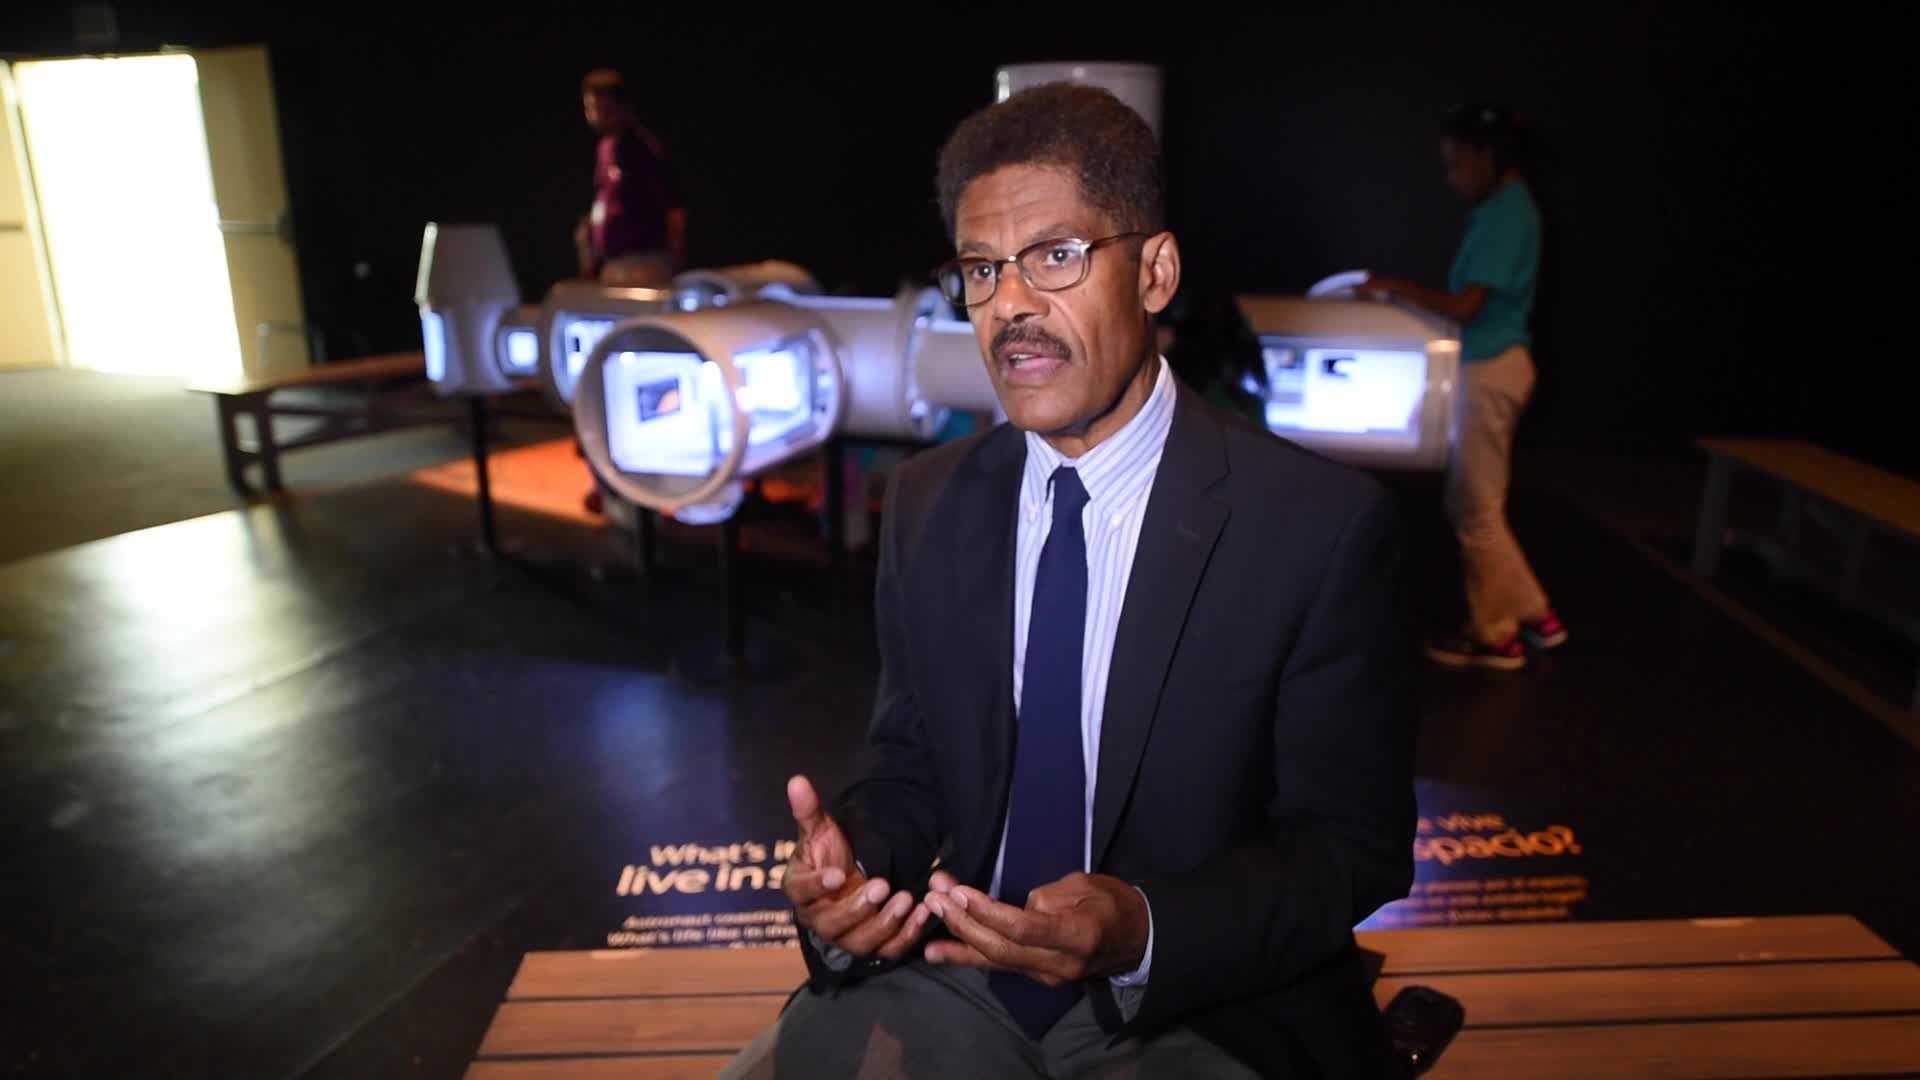 Kenneth Phillips, Ph.D., Curator, Aerospace Science: It was Ken who, in the early 1990's, knew that the shuttle program would someday end. At that time, the former California Museum of Science and Industry was developing a master plan to become the California Science Center, and  the air and space gallery blueprint included an outline for a space shuttle. Later on, it was Ken who wrote the proposal to NASA for the shuttle, and who also received the call from NASA Administrator Charles Bolden that the ...